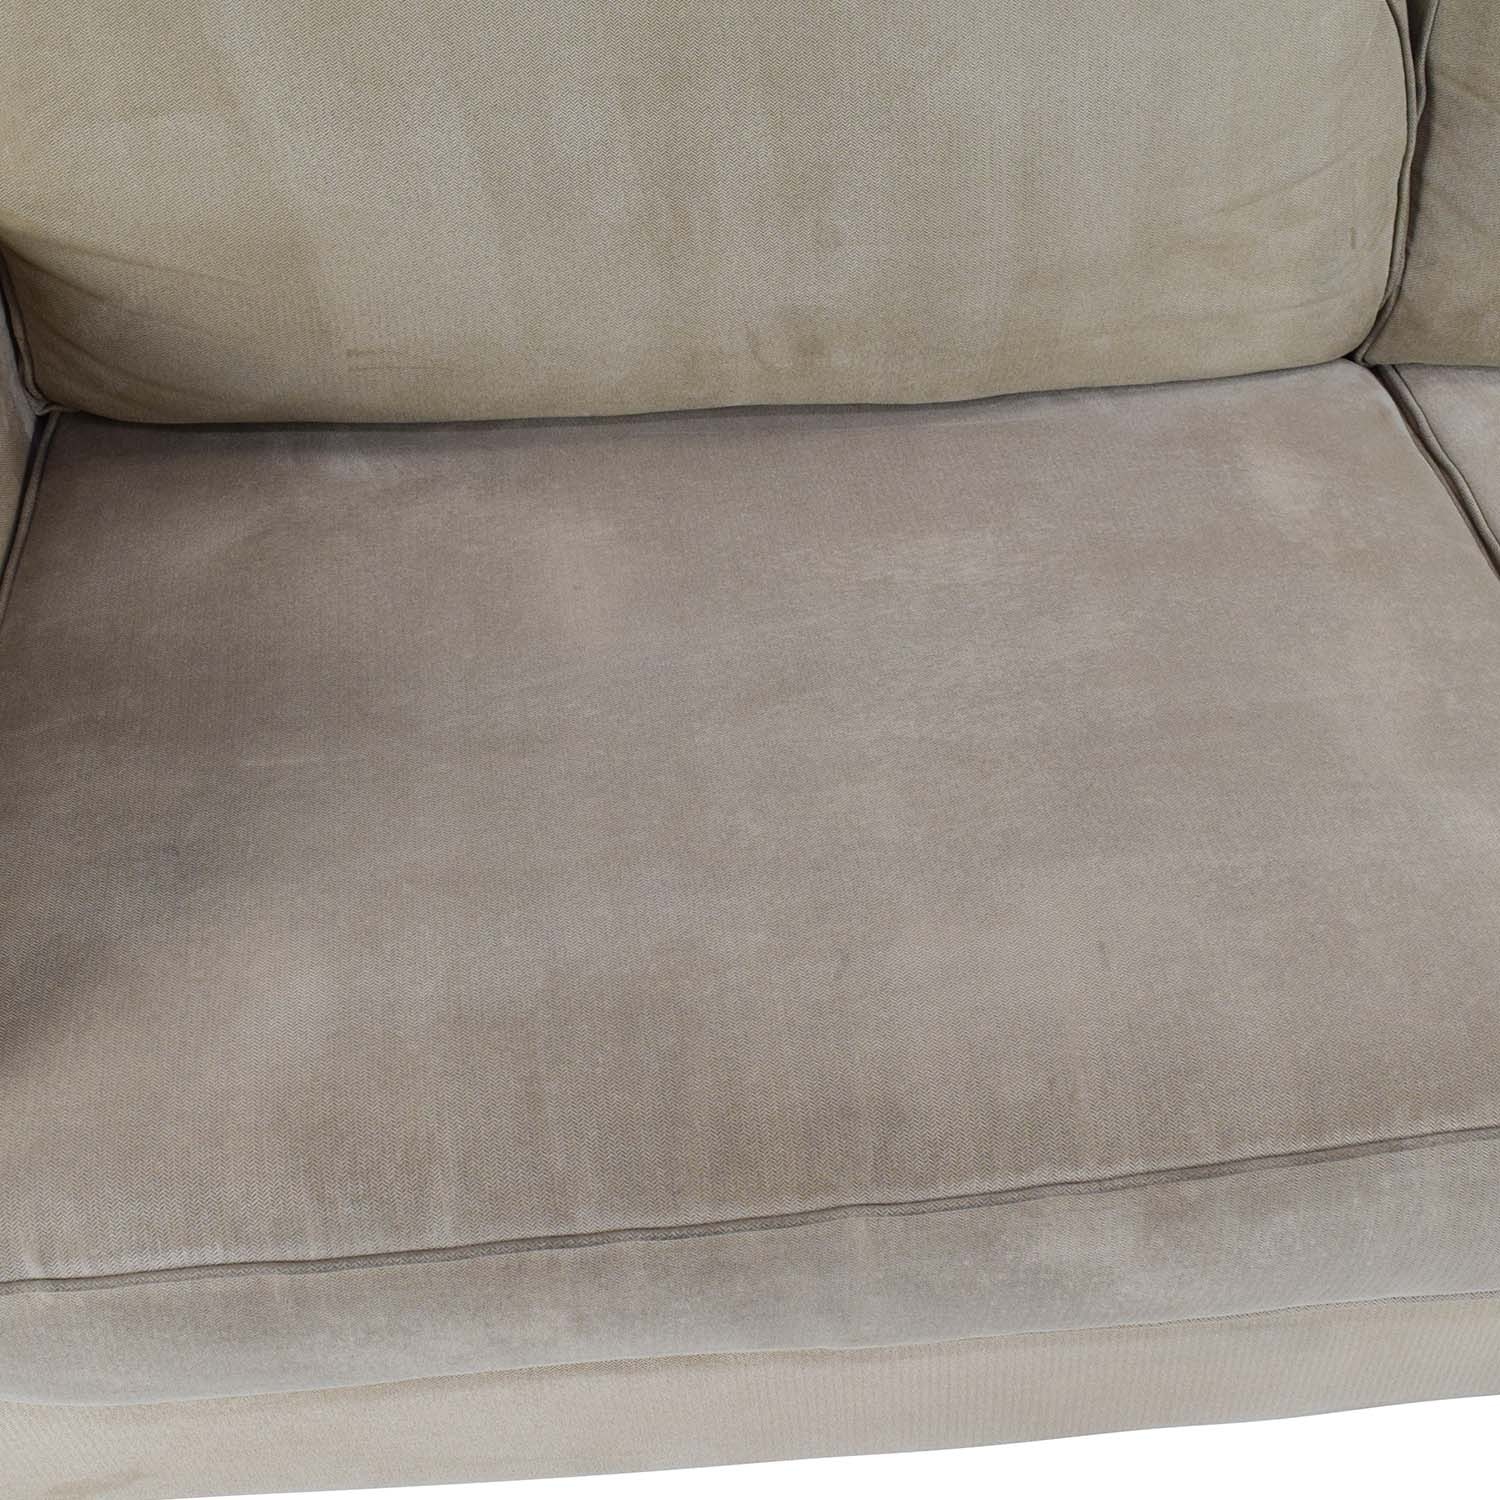 ... Shop Pier 1 Alton Rolled Arm Sofa Pier 1 Imports ...